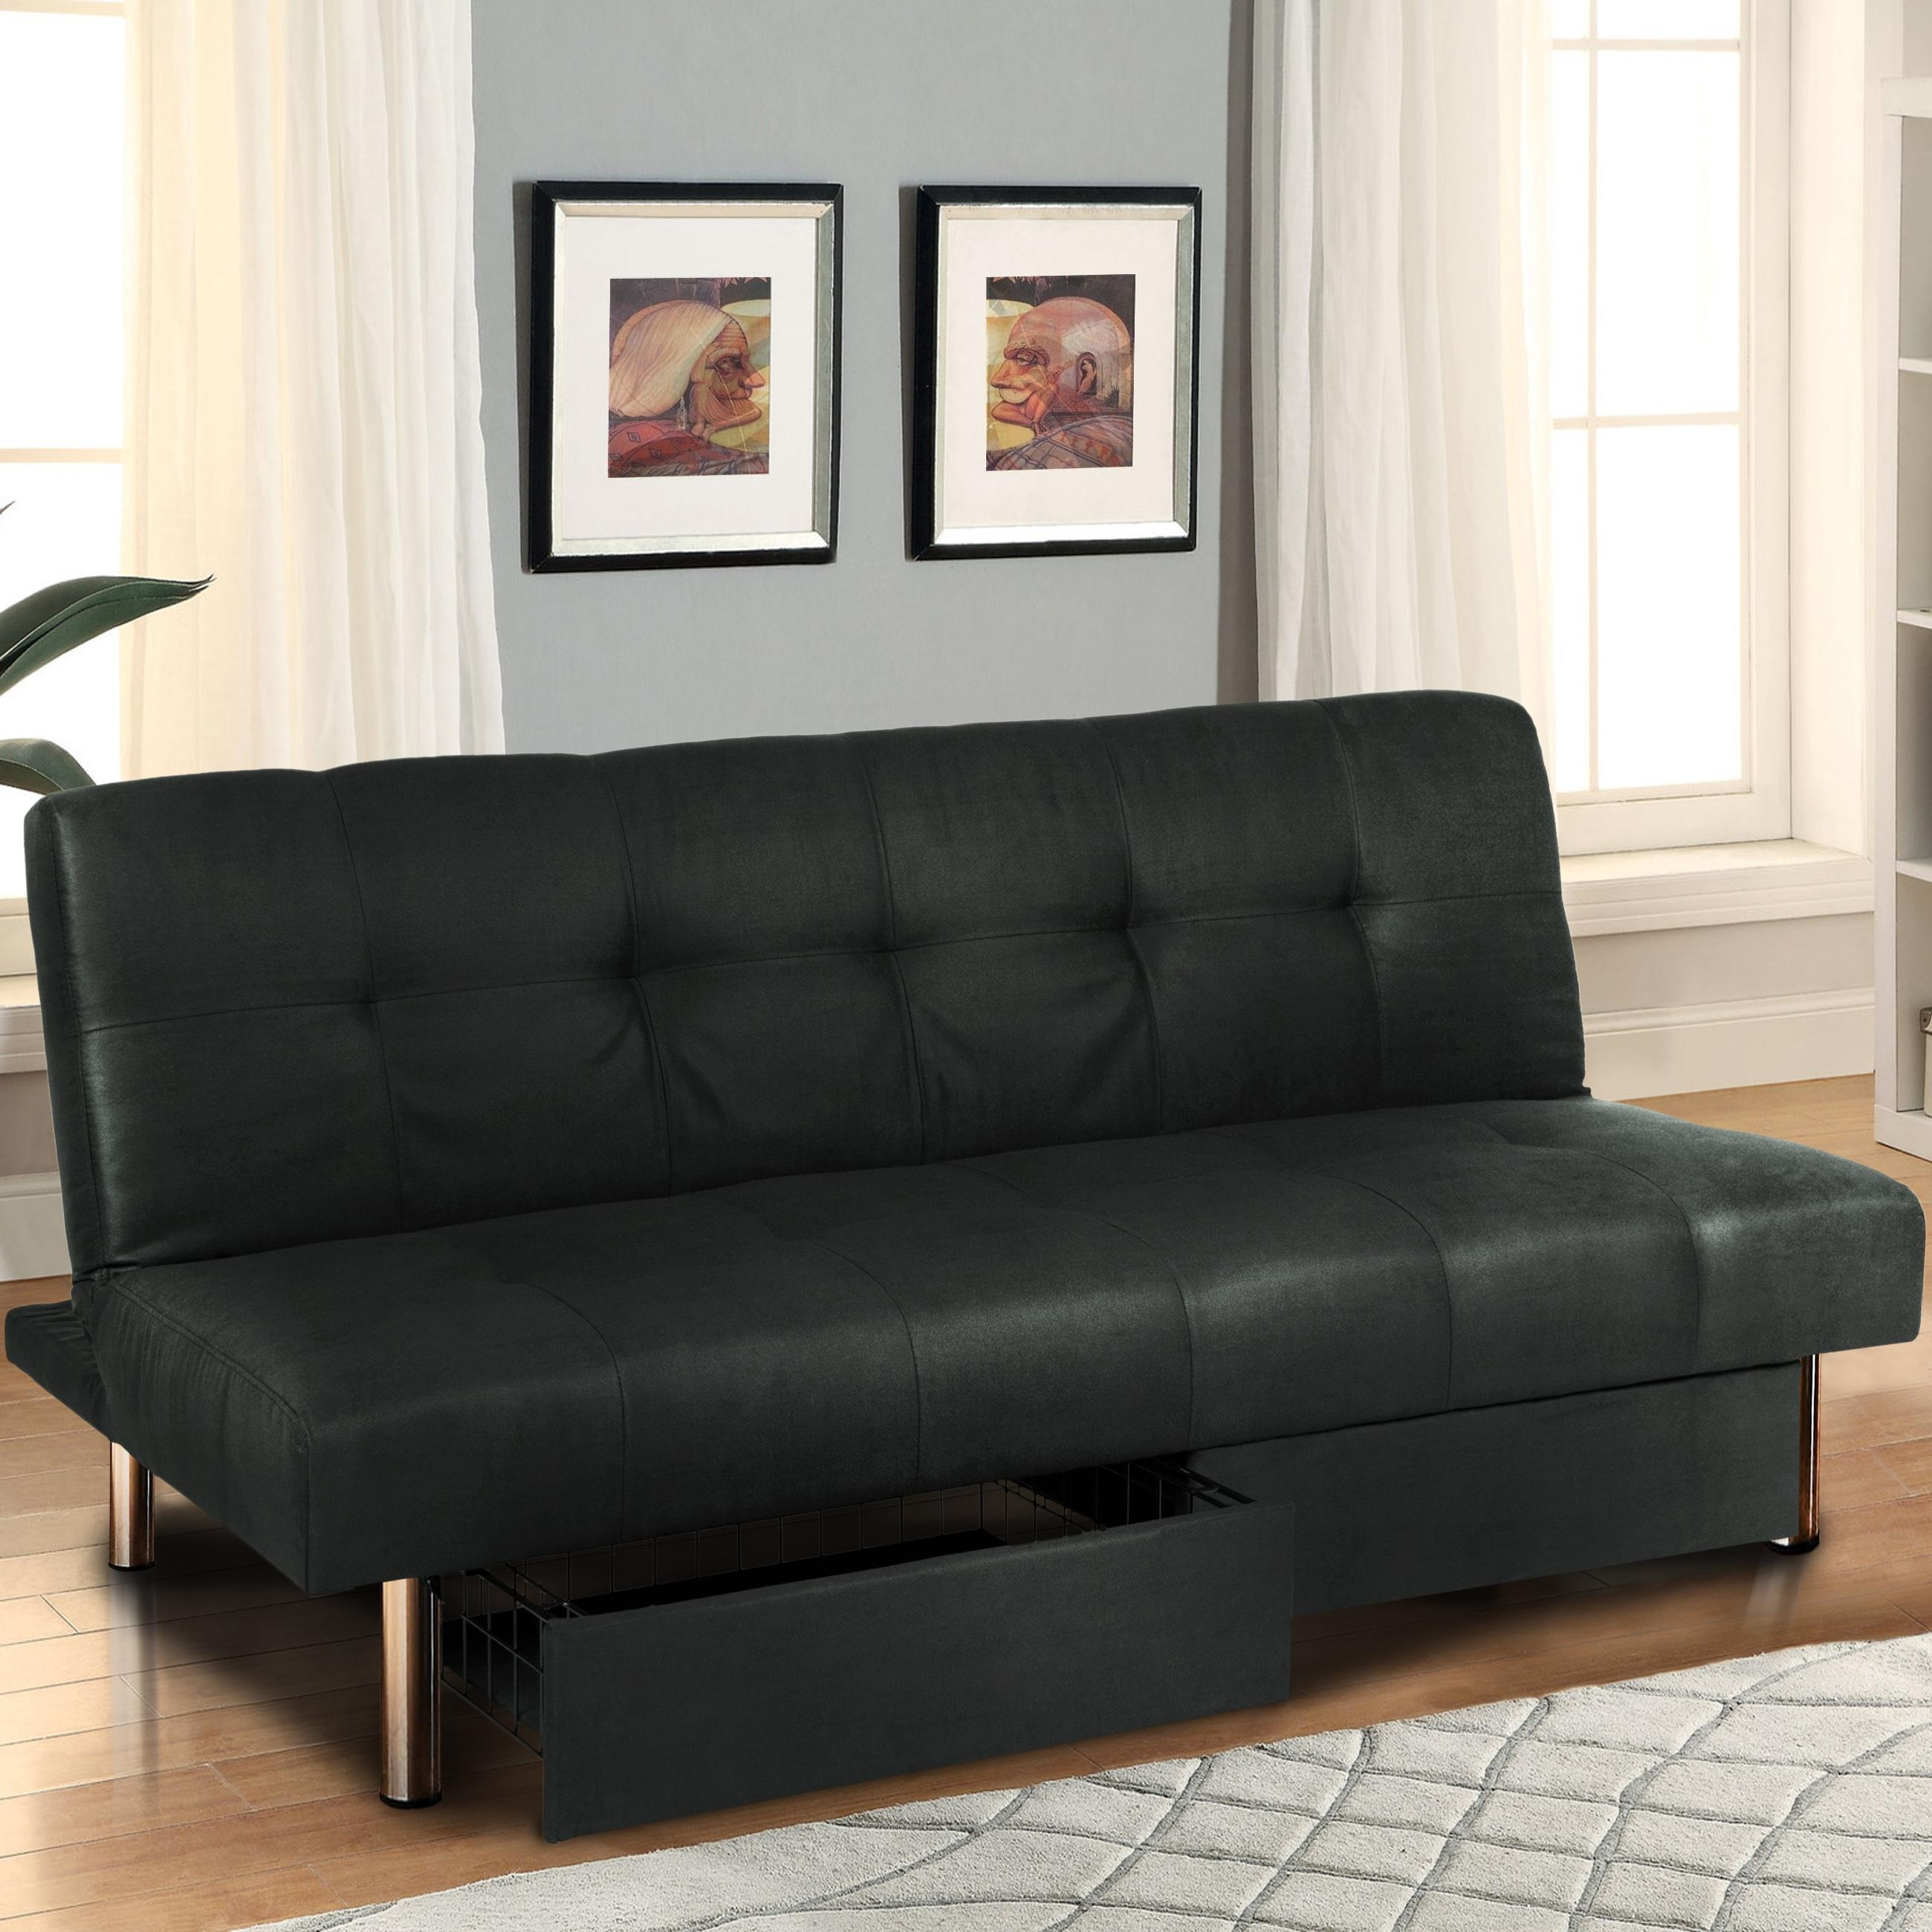 Best Choice Products Modern Entertainment Futon Sofa Bed Fold Up For Leather Fouton Sofas (Image 3 of 20)